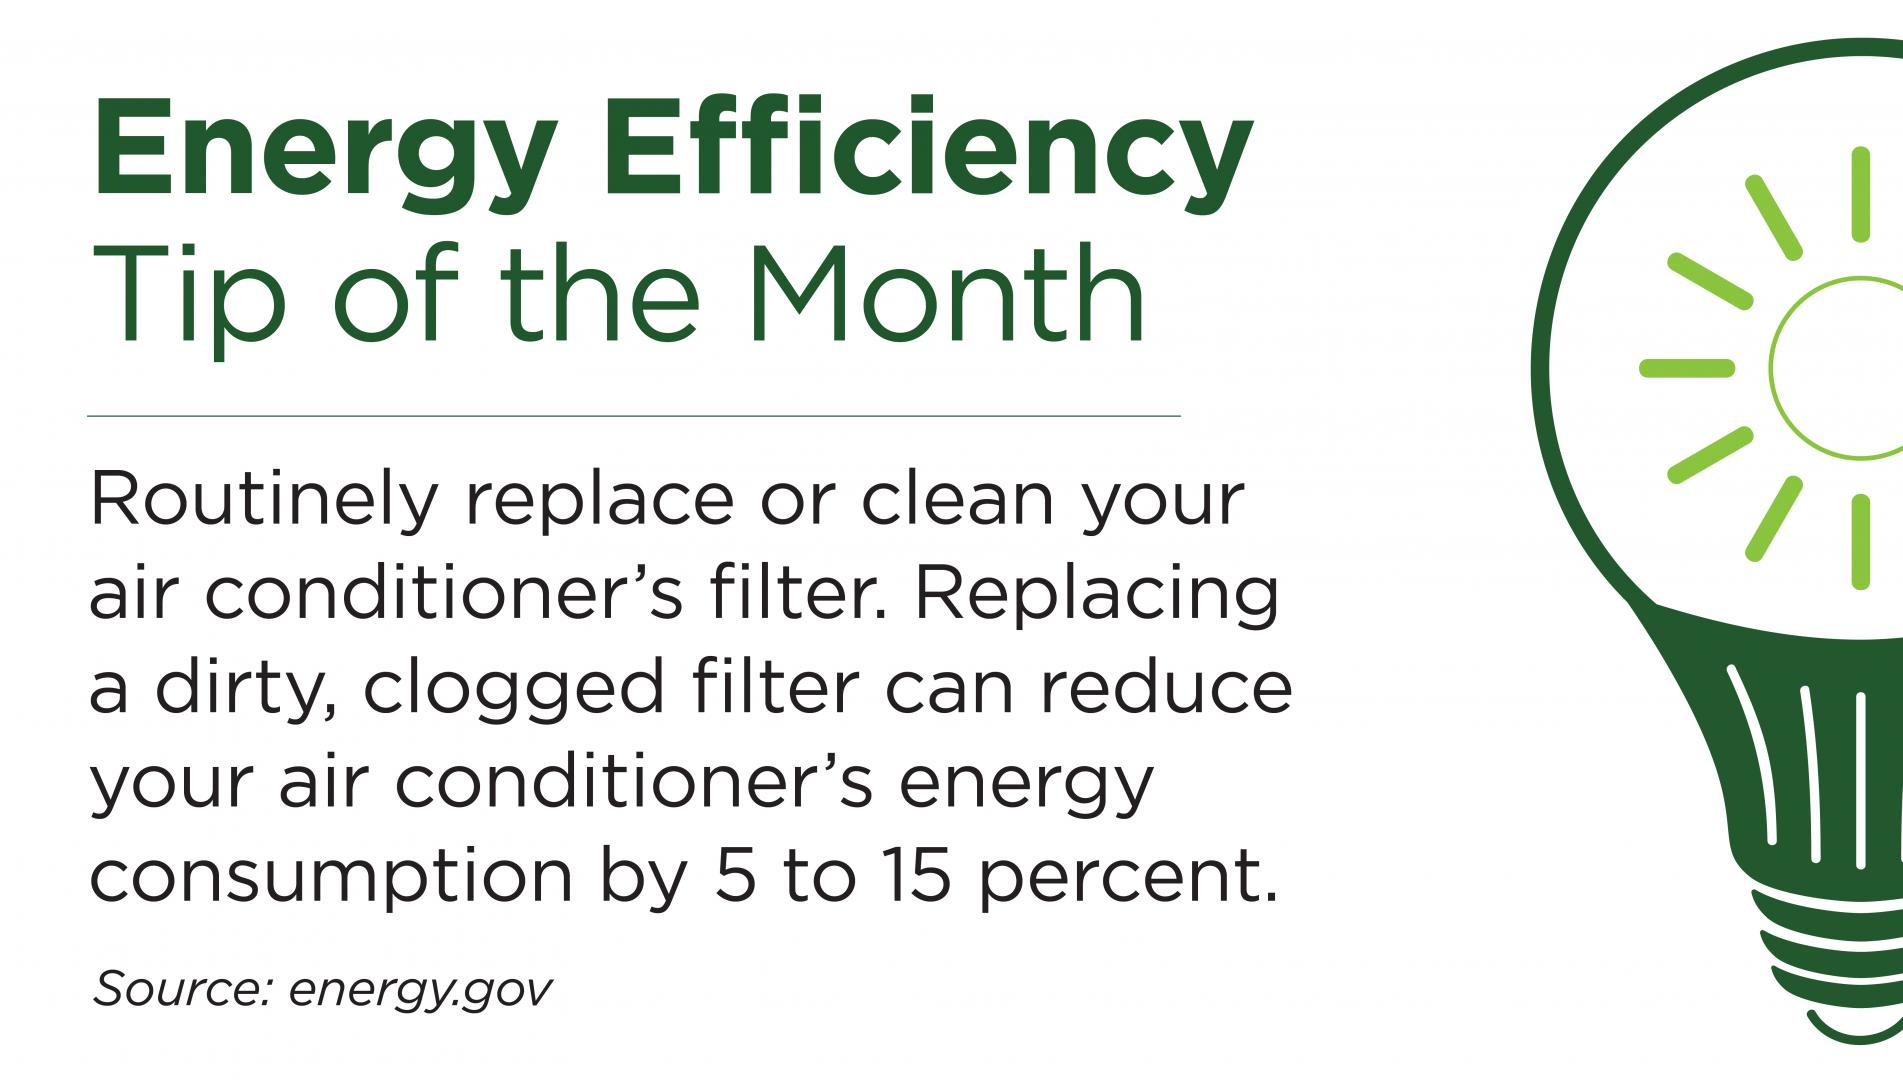 Energy Efficiency Tip